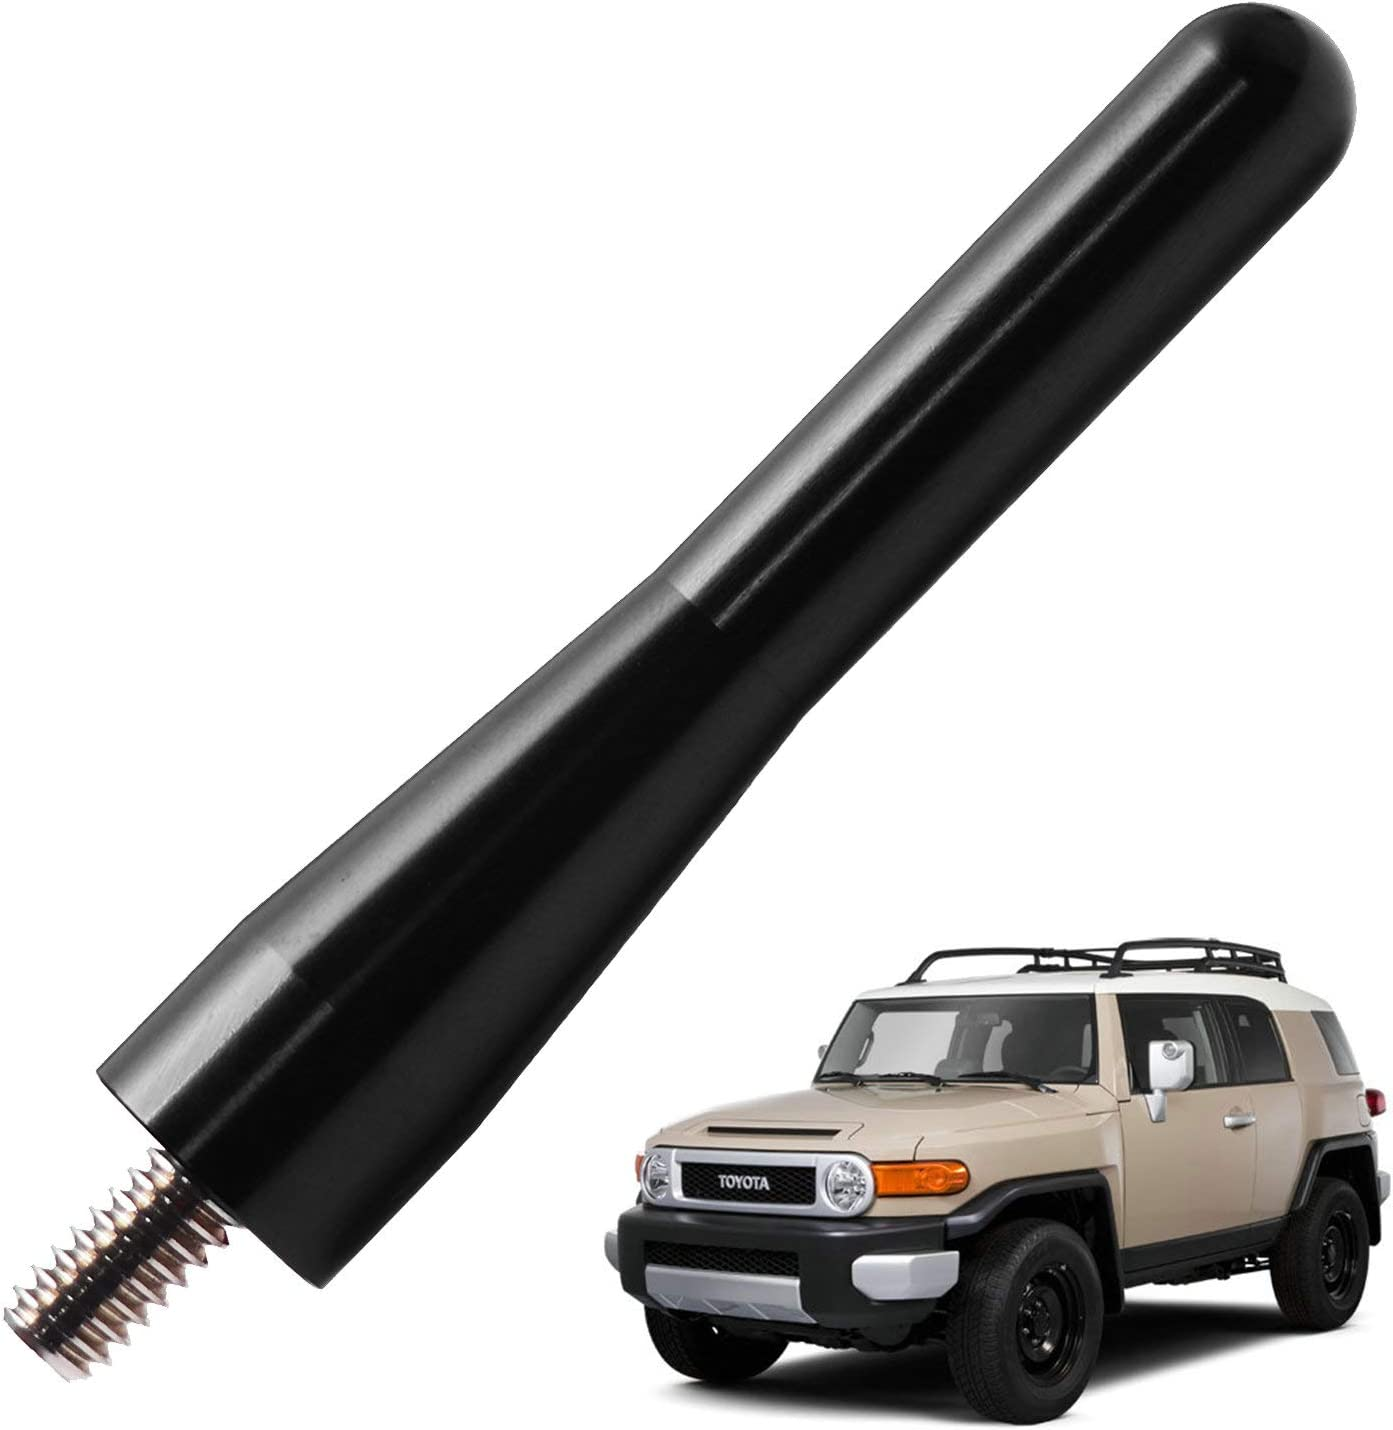 JAPower Replacement Antenna Compatible with BMW 3 Series Convertible 1991-2006 3.2 inches-Black